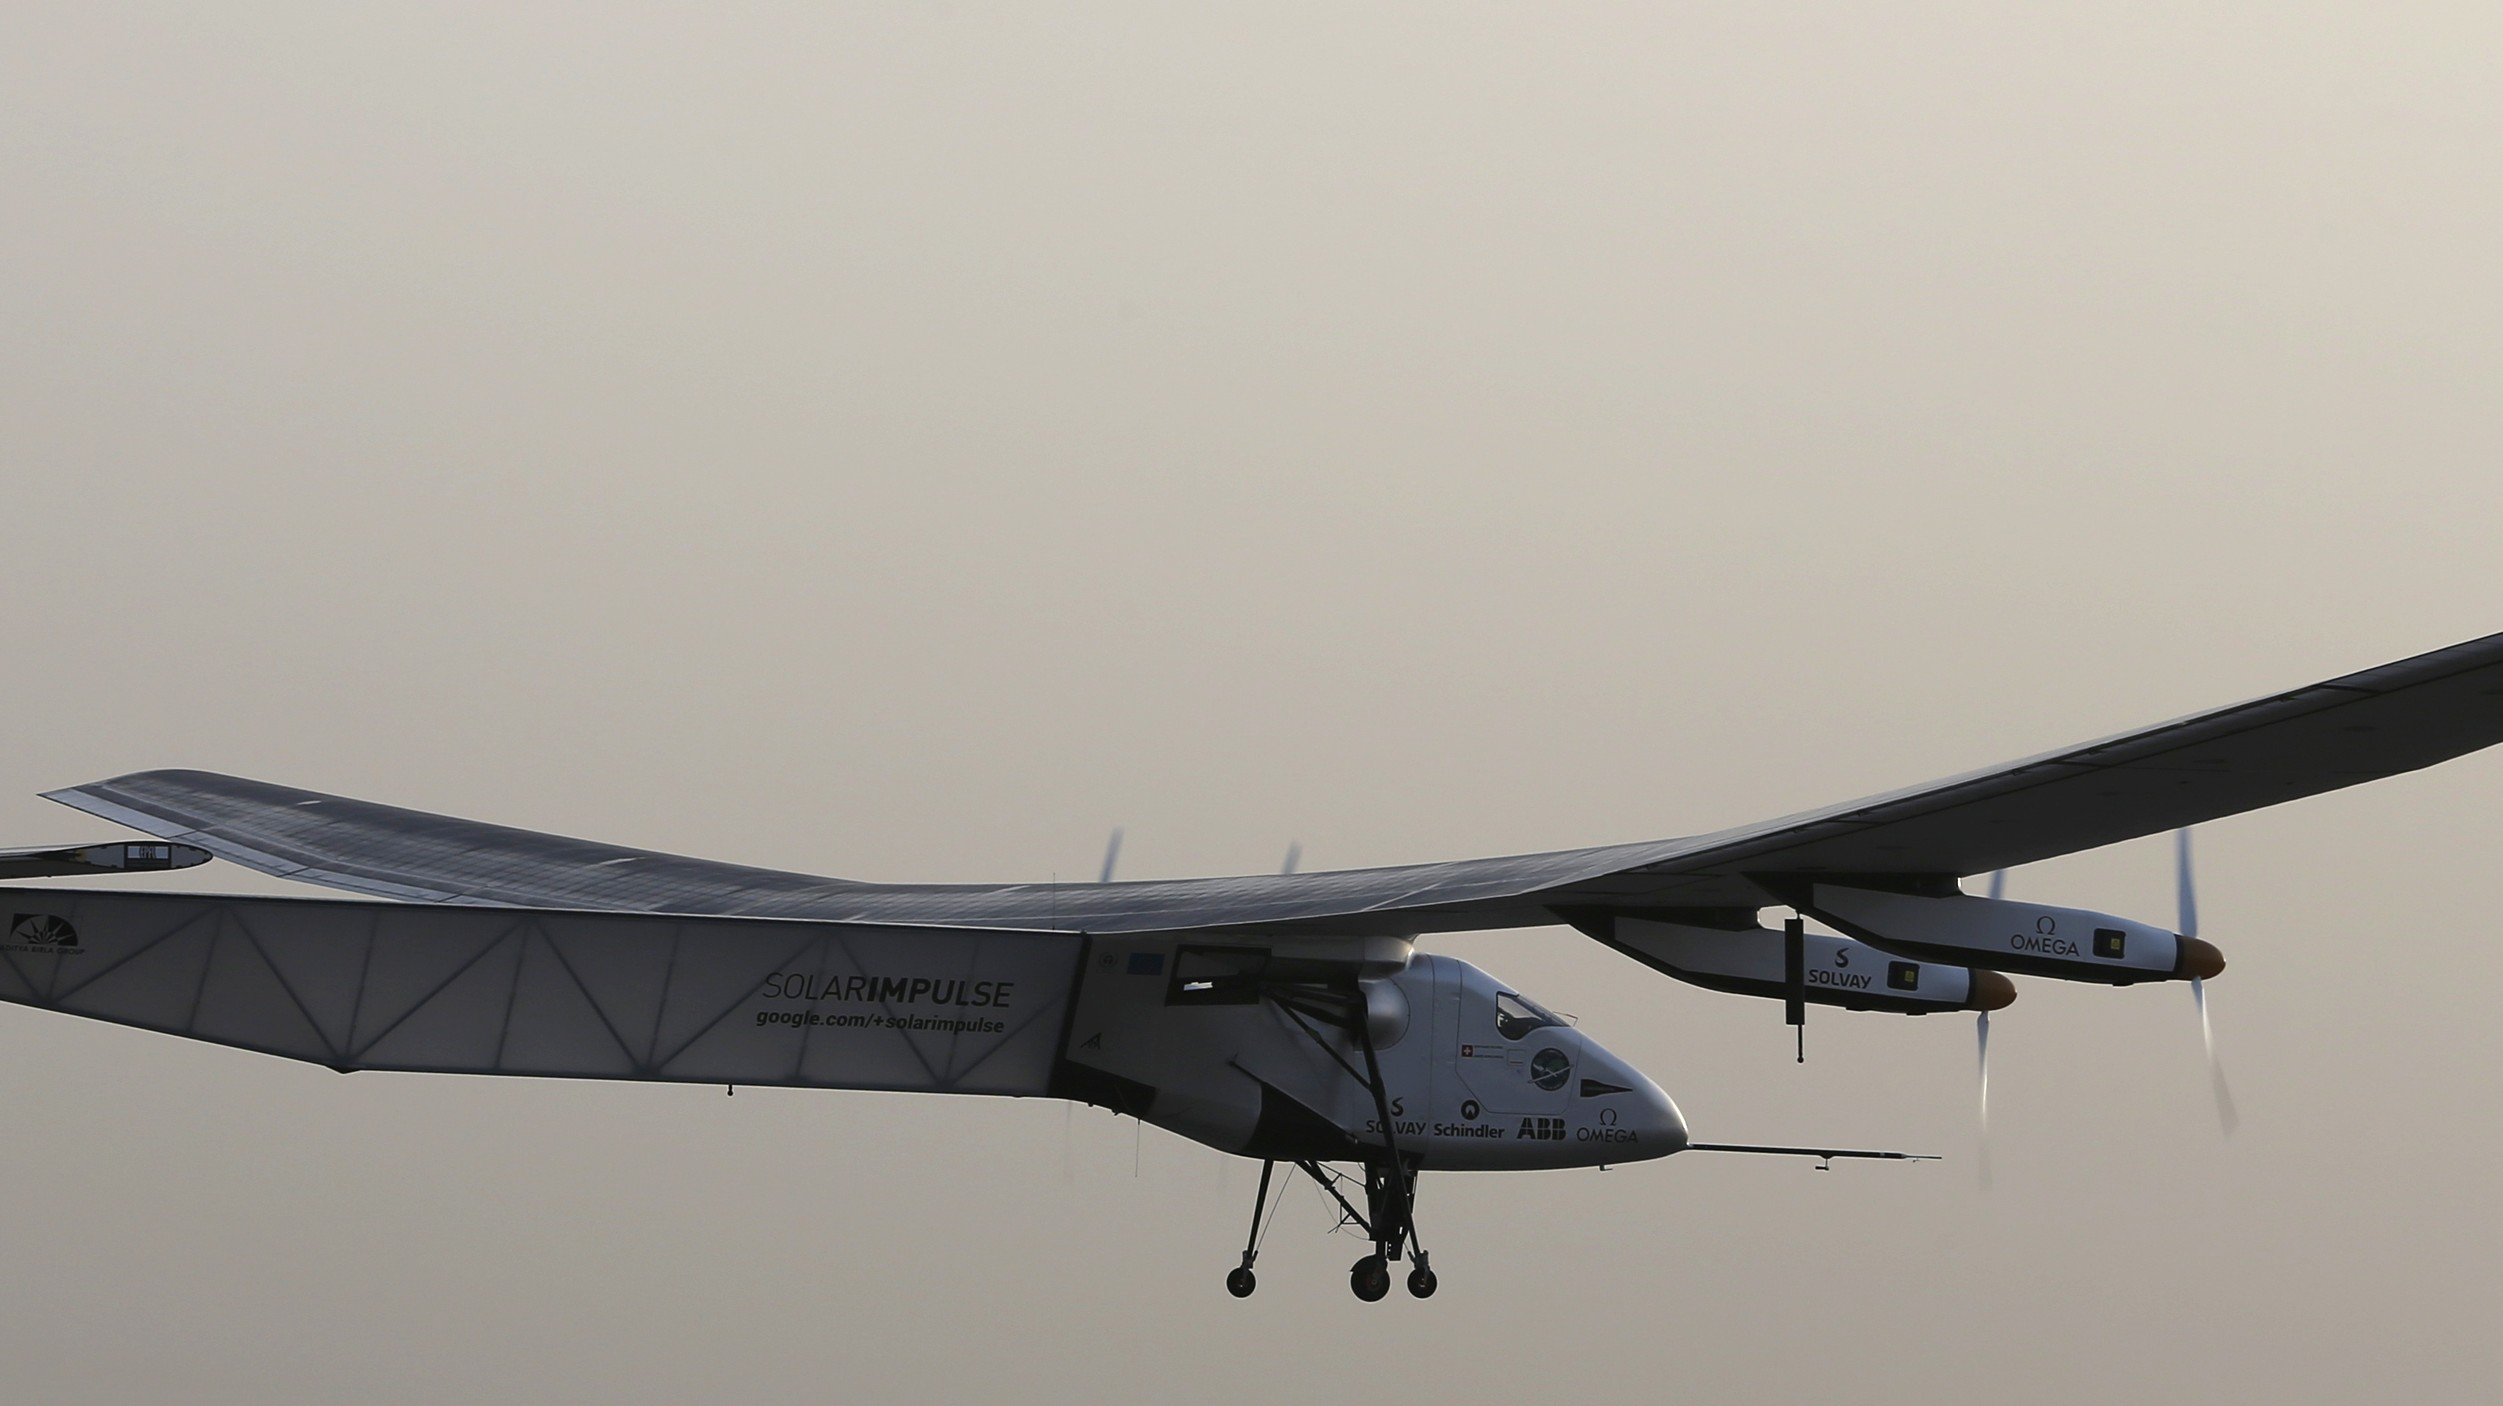 Solar-Powered Swiss Plane Launches Historic Trip Around the World